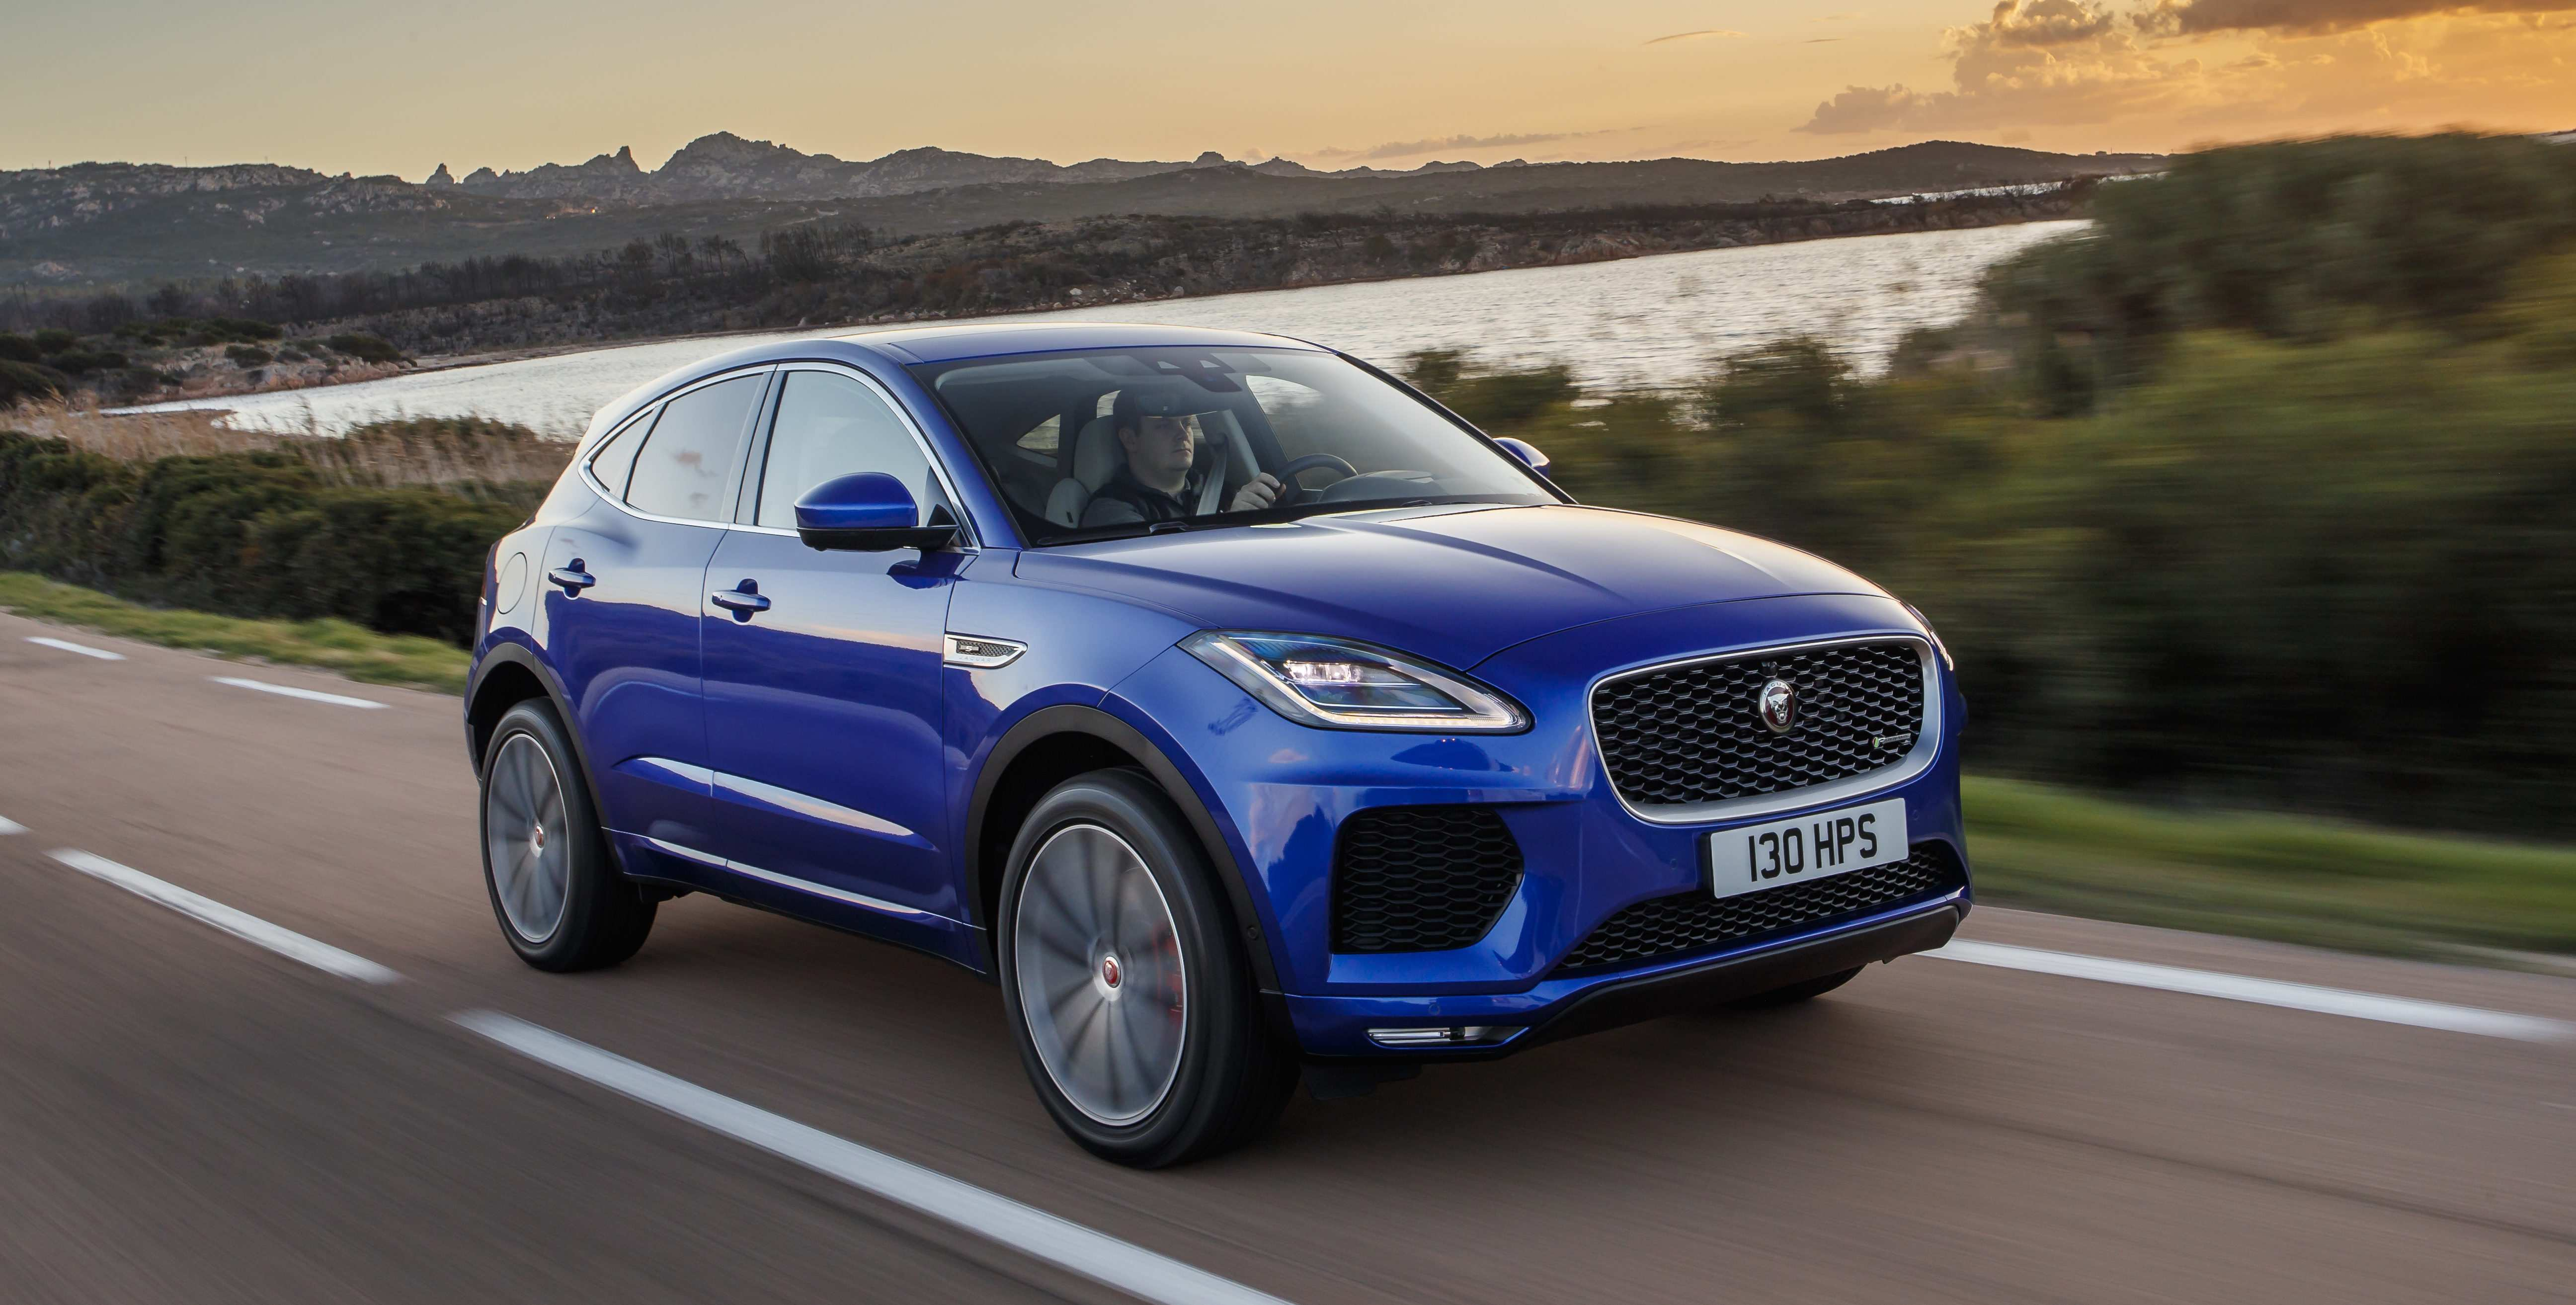 31 Gallery of Jaguar E Pace Ibrida 2020 Spy Shoot by Jaguar E Pace Ibrida 2020